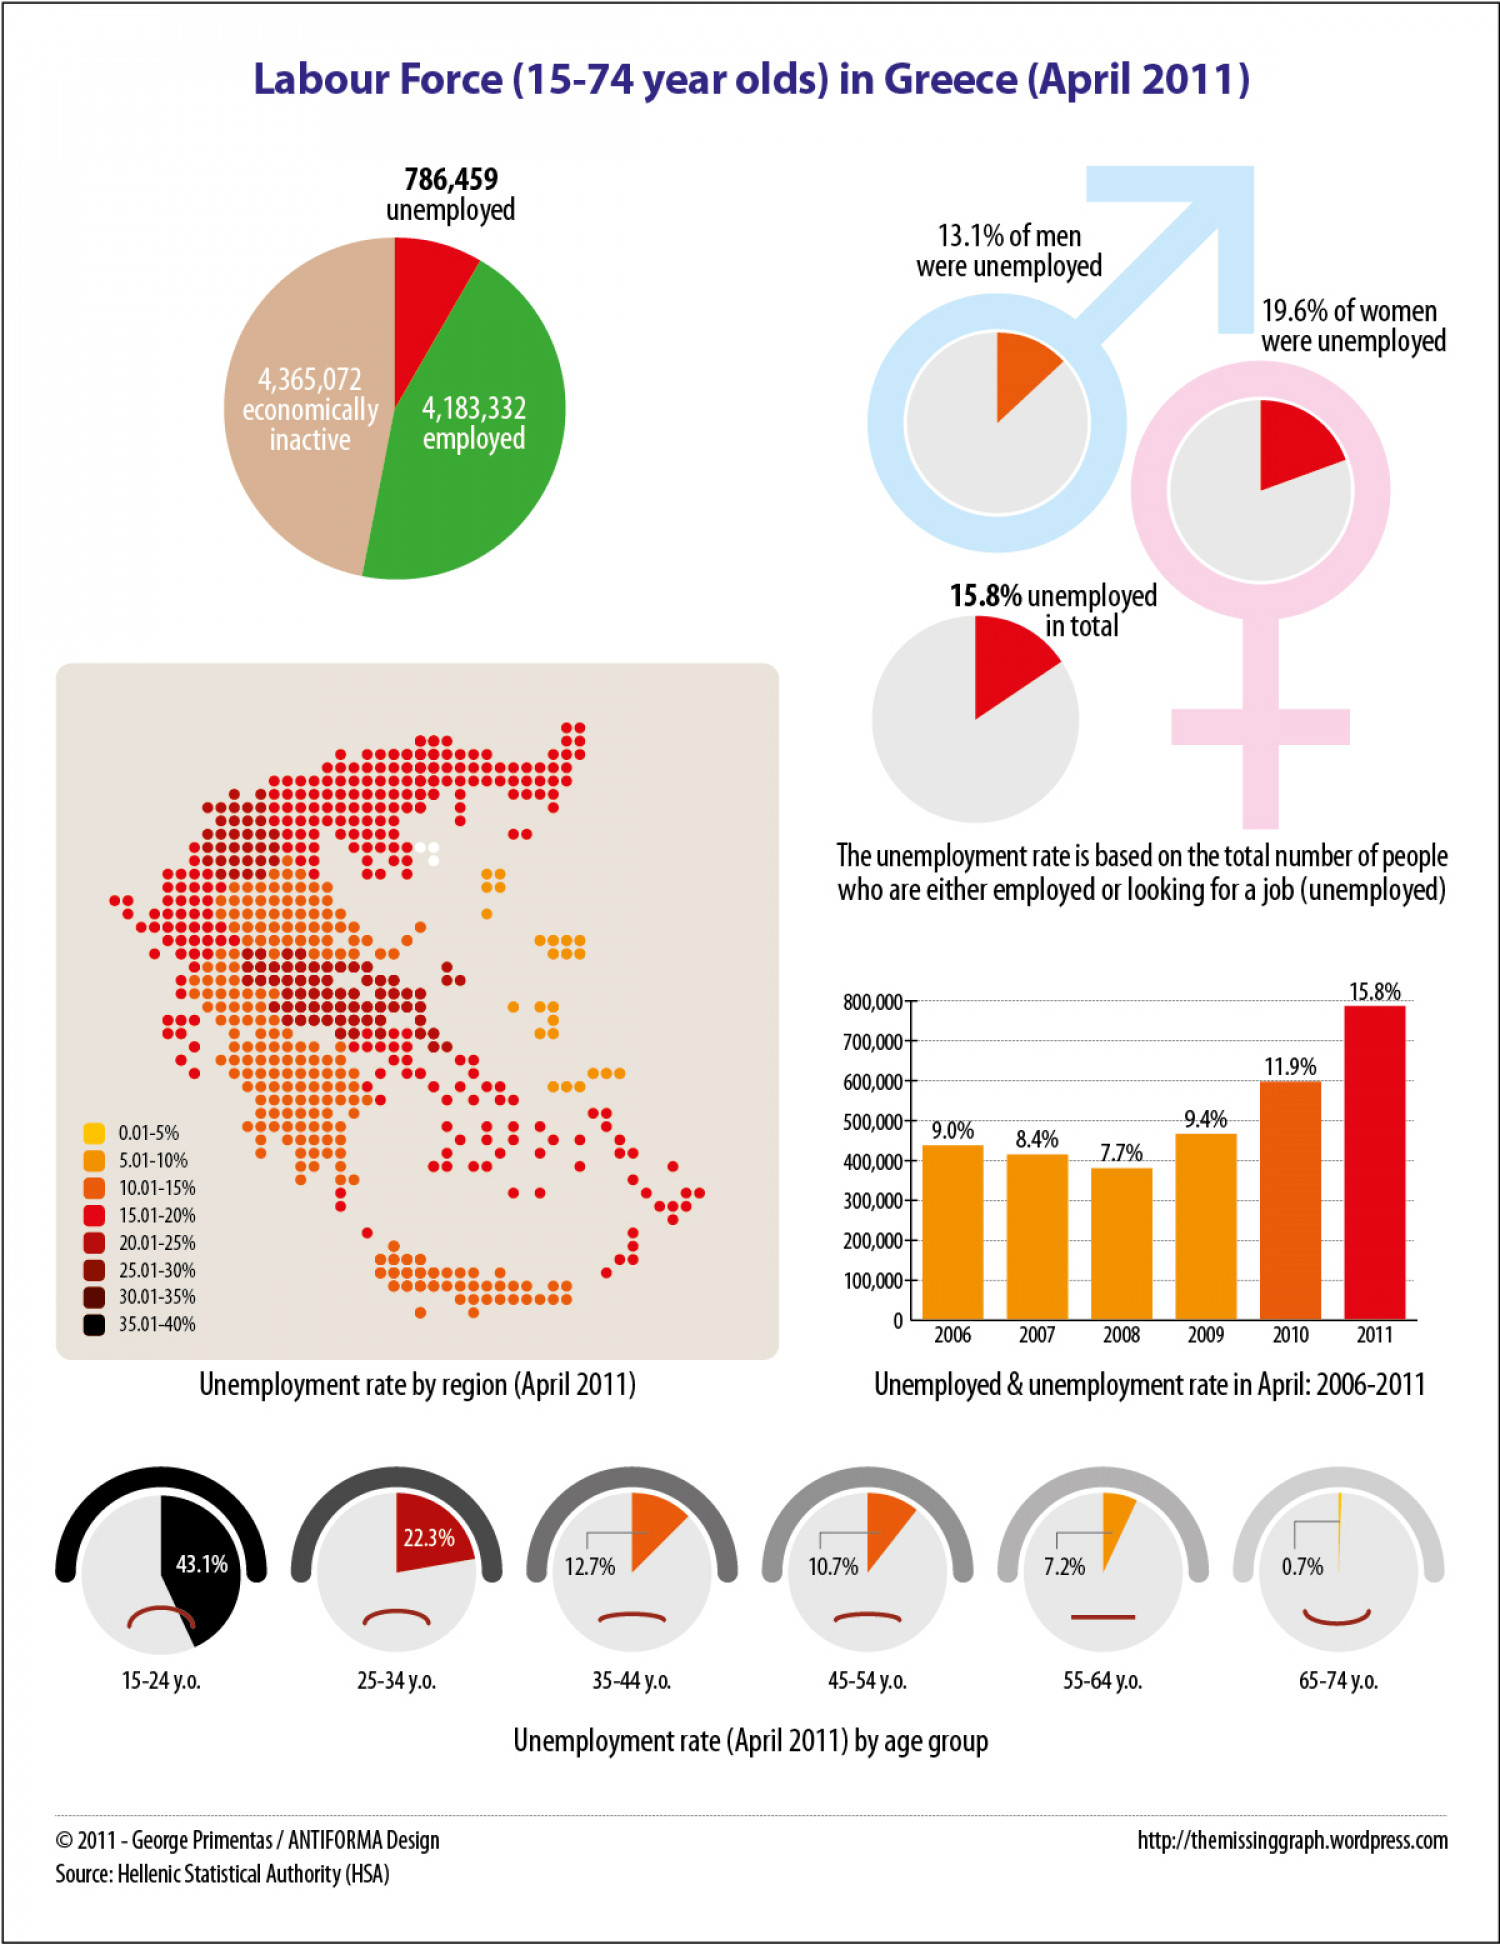 Labour Force in Greece April 2011 Infographic